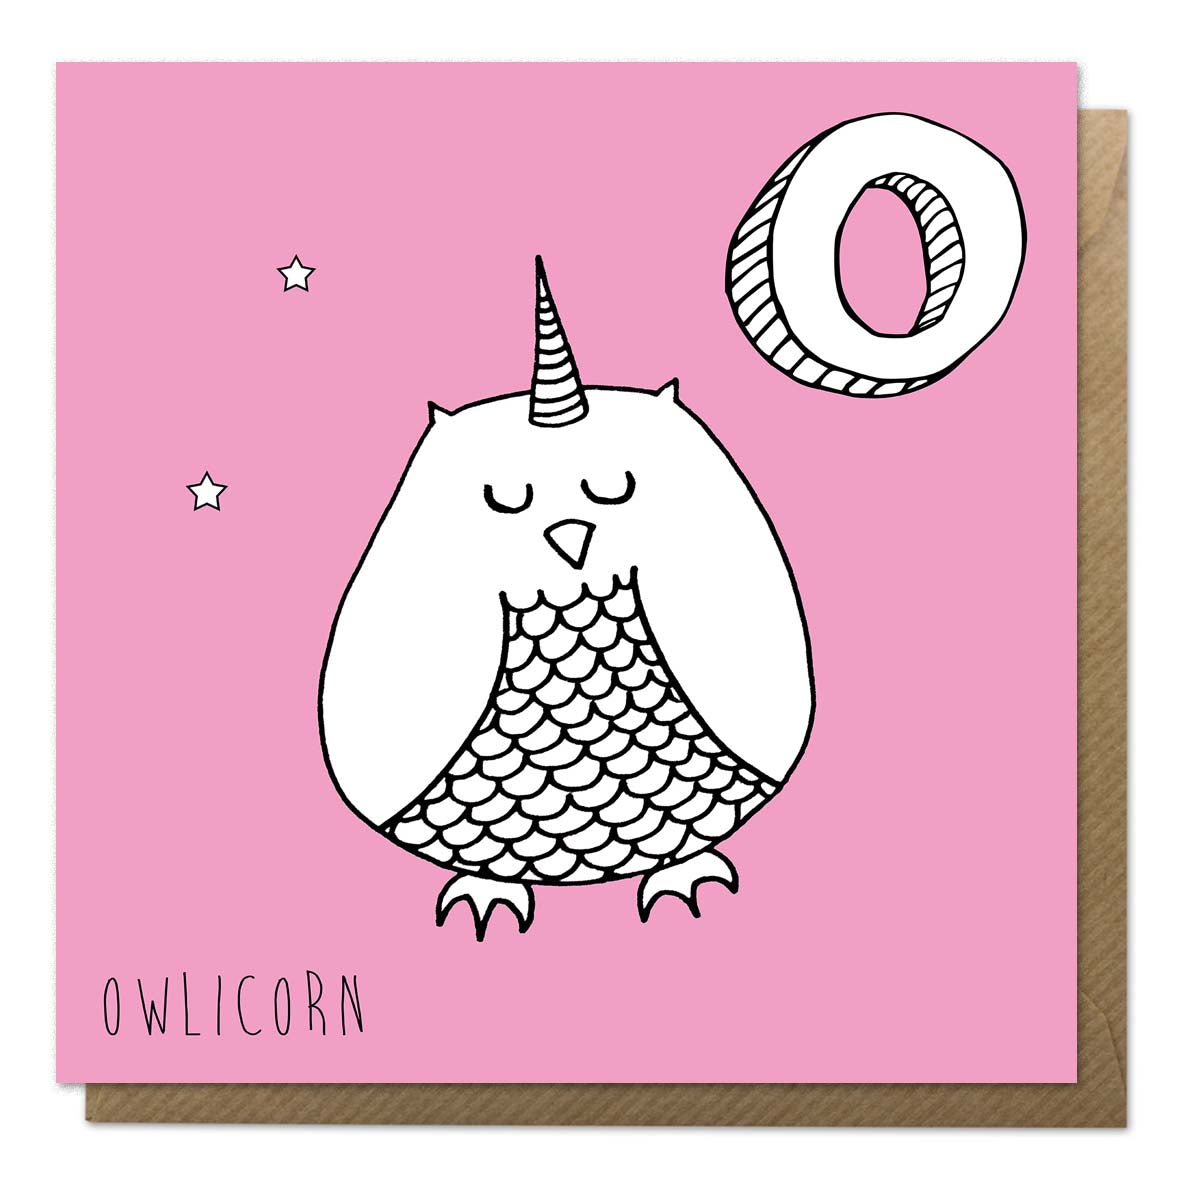 Pink greeting card with an illustration of an owl unicorn